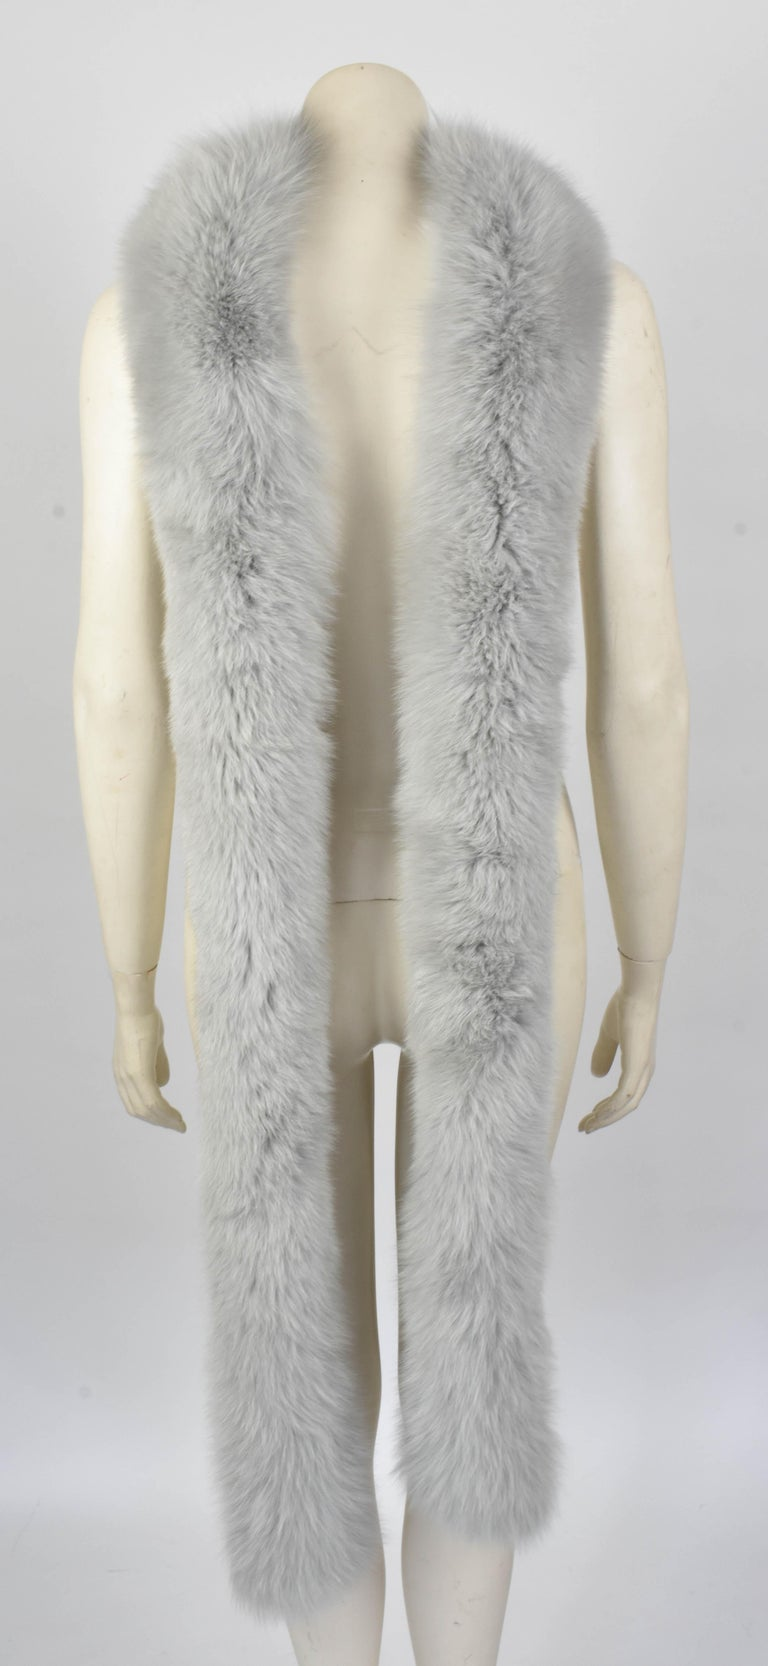 This scarf by Gianni Versace Couture is very fluffy and soft as it is made from real fox fur. It is extremely long so it can be worn in different manners. A similar scarf was shown in the Atelier Versace show in 2014.  Perfect condition